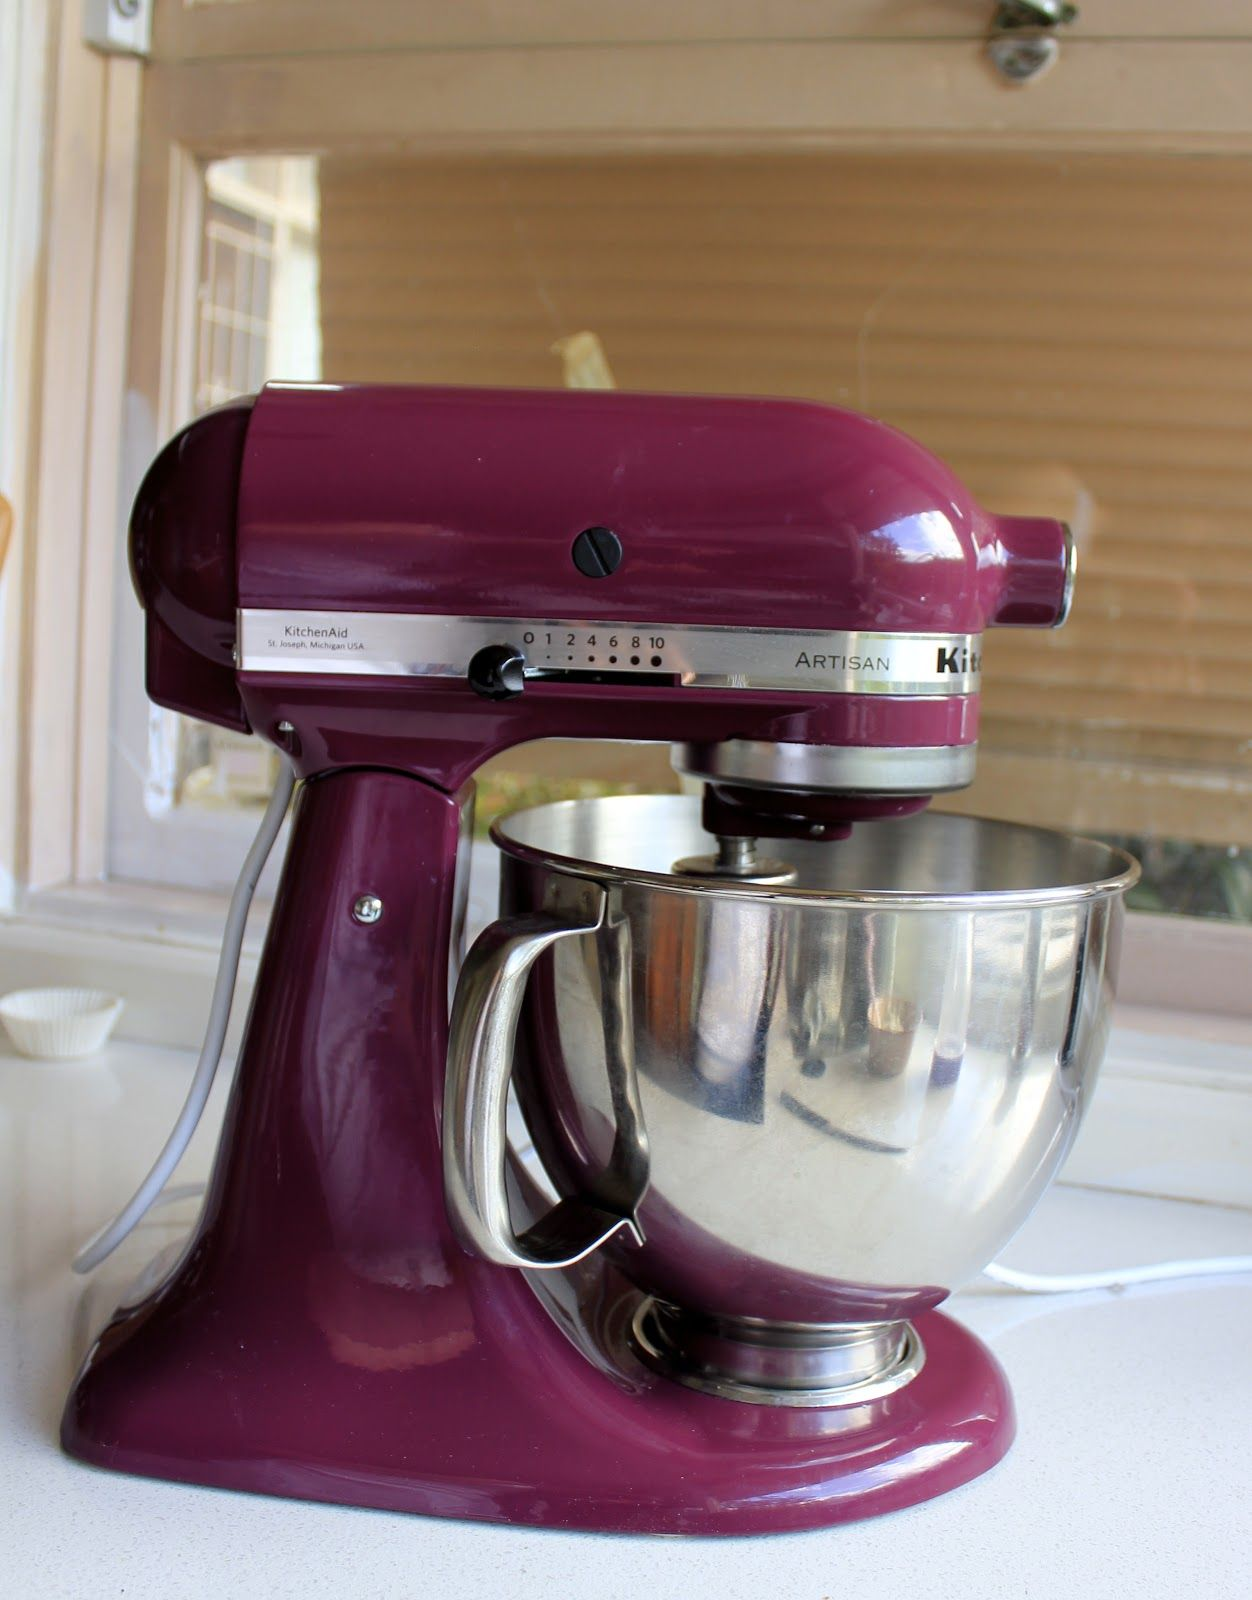 Kitchenaid Artisan Gelb Boysenberry Kitchenaid My Kitchen Items Kitchen Items Kitchen